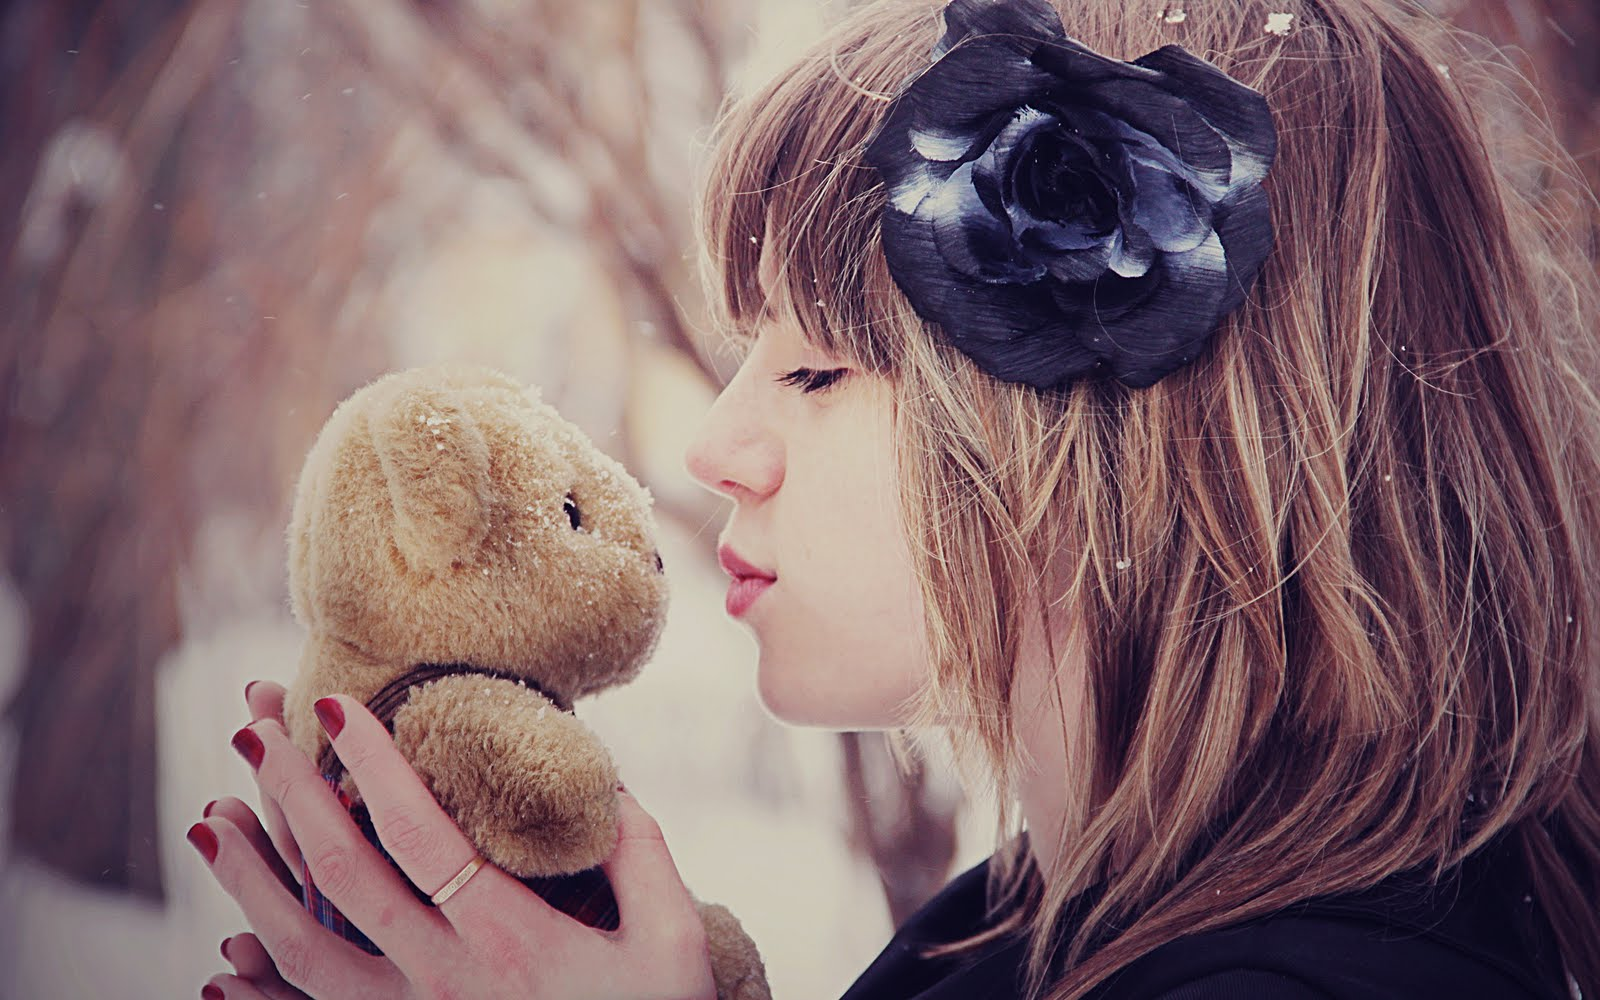 http://1.bp.blogspot.com/-yGnWe4f0YG0/Tp0KJO193VI/AAAAAAAAAo4/fOFDZlfaXlo/s1600/Mood+Girl+Kiss+Bear+Toy+Flower+Snow+Winter+HD+Wallpaper+-+LoveWallpapers4u.Blogspot.Com.jpg